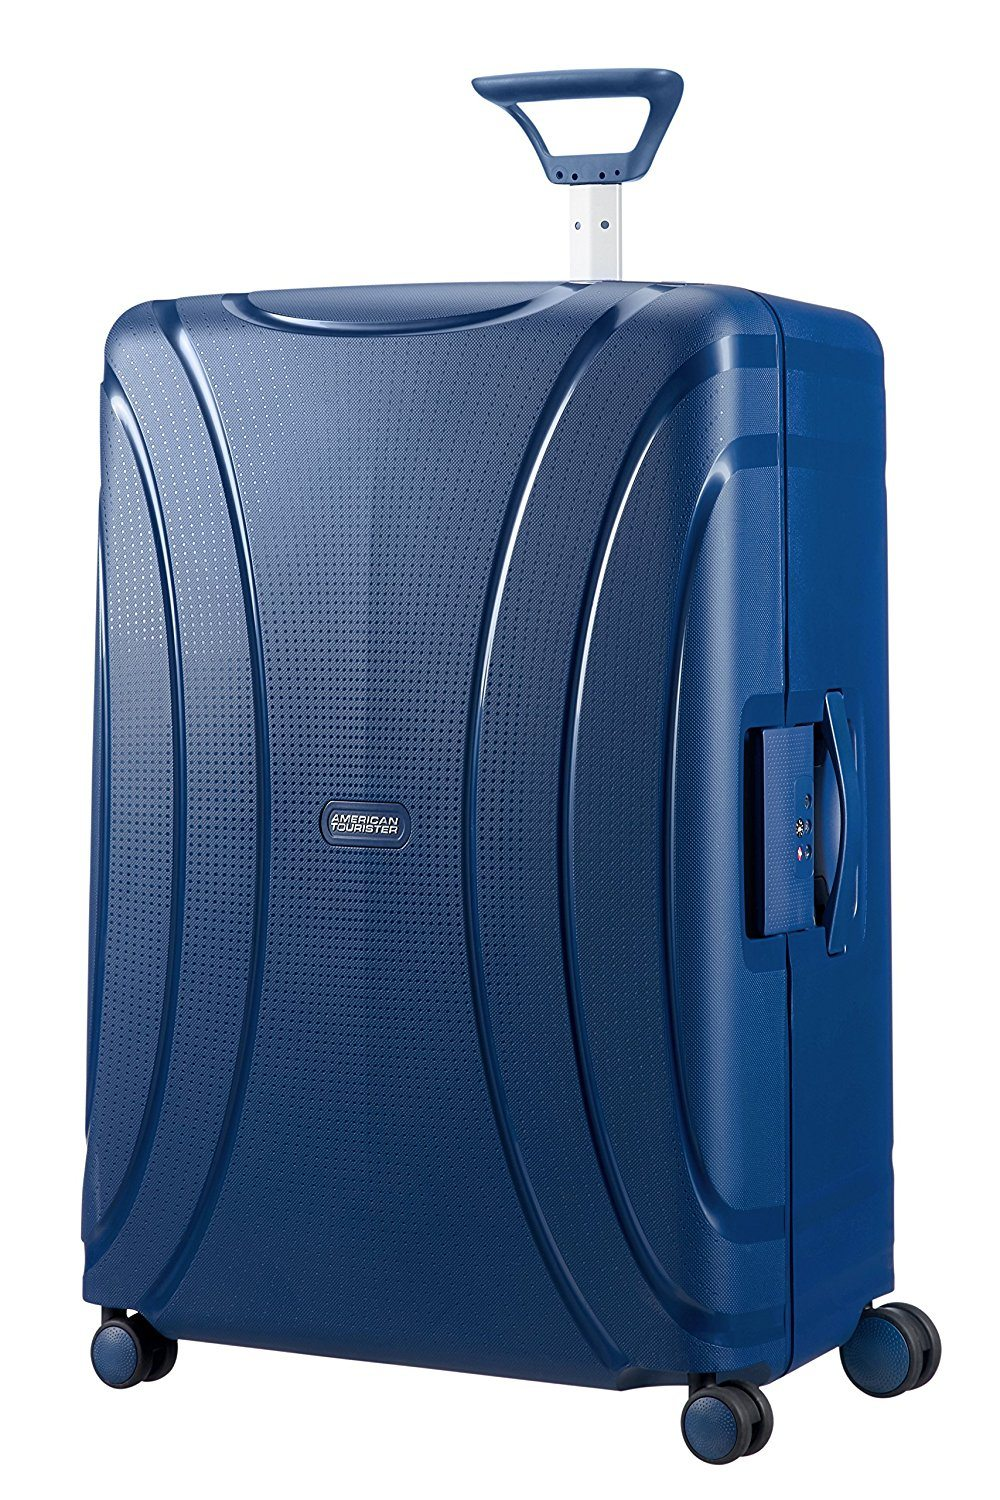 Suitcase American Tourister: User Reviews 18